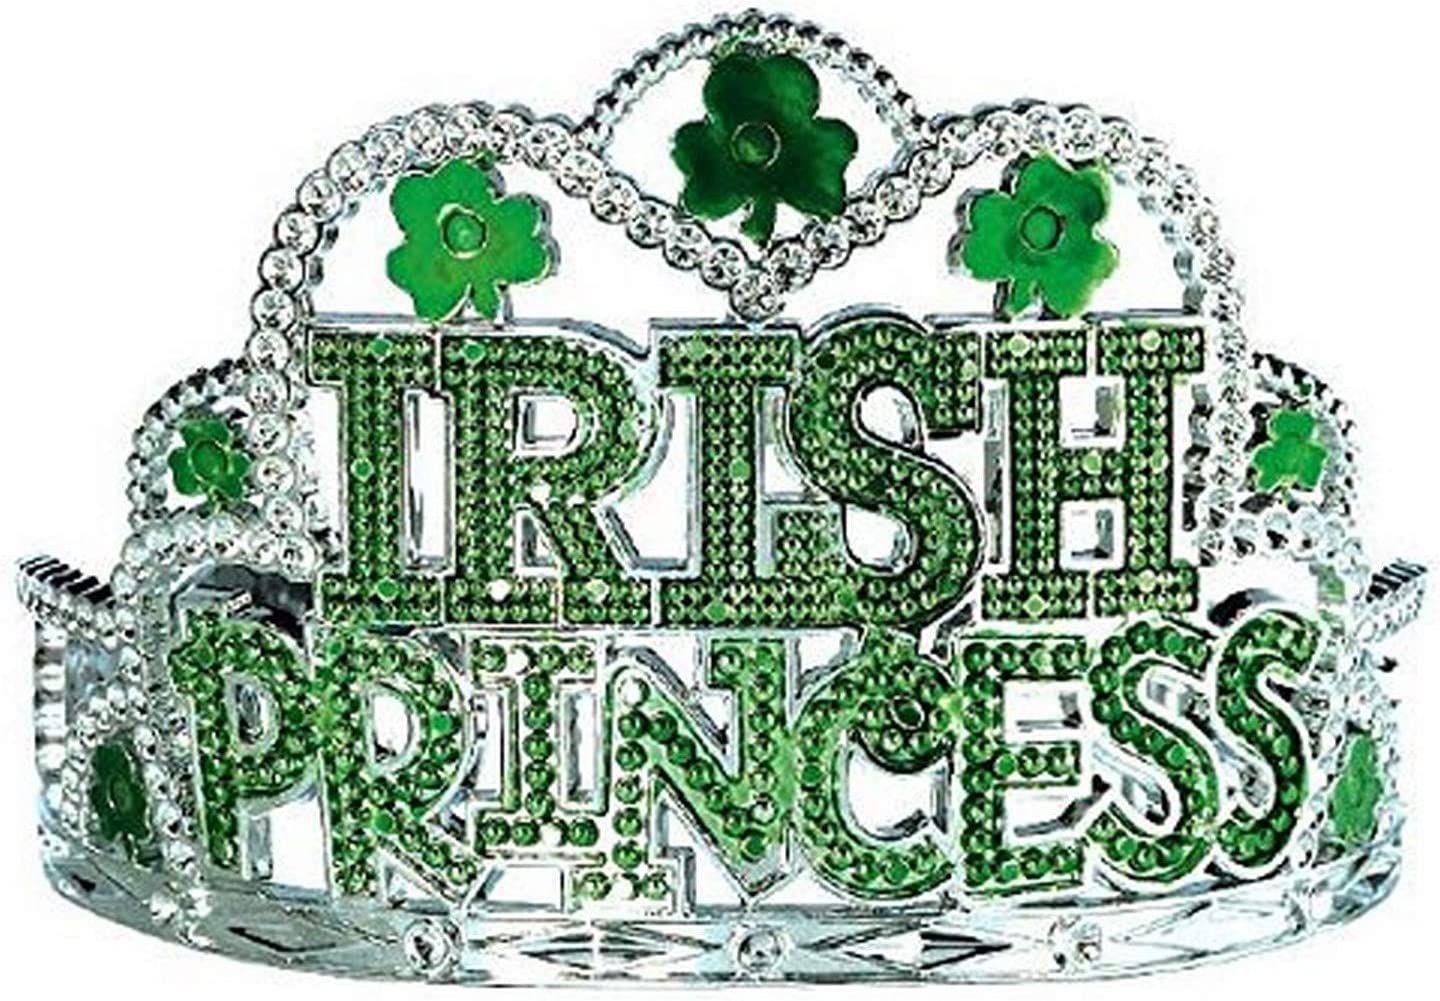 St Patrick/'s Day Clover Tiara Crown Wand Party Princess Girl Accessory Costume